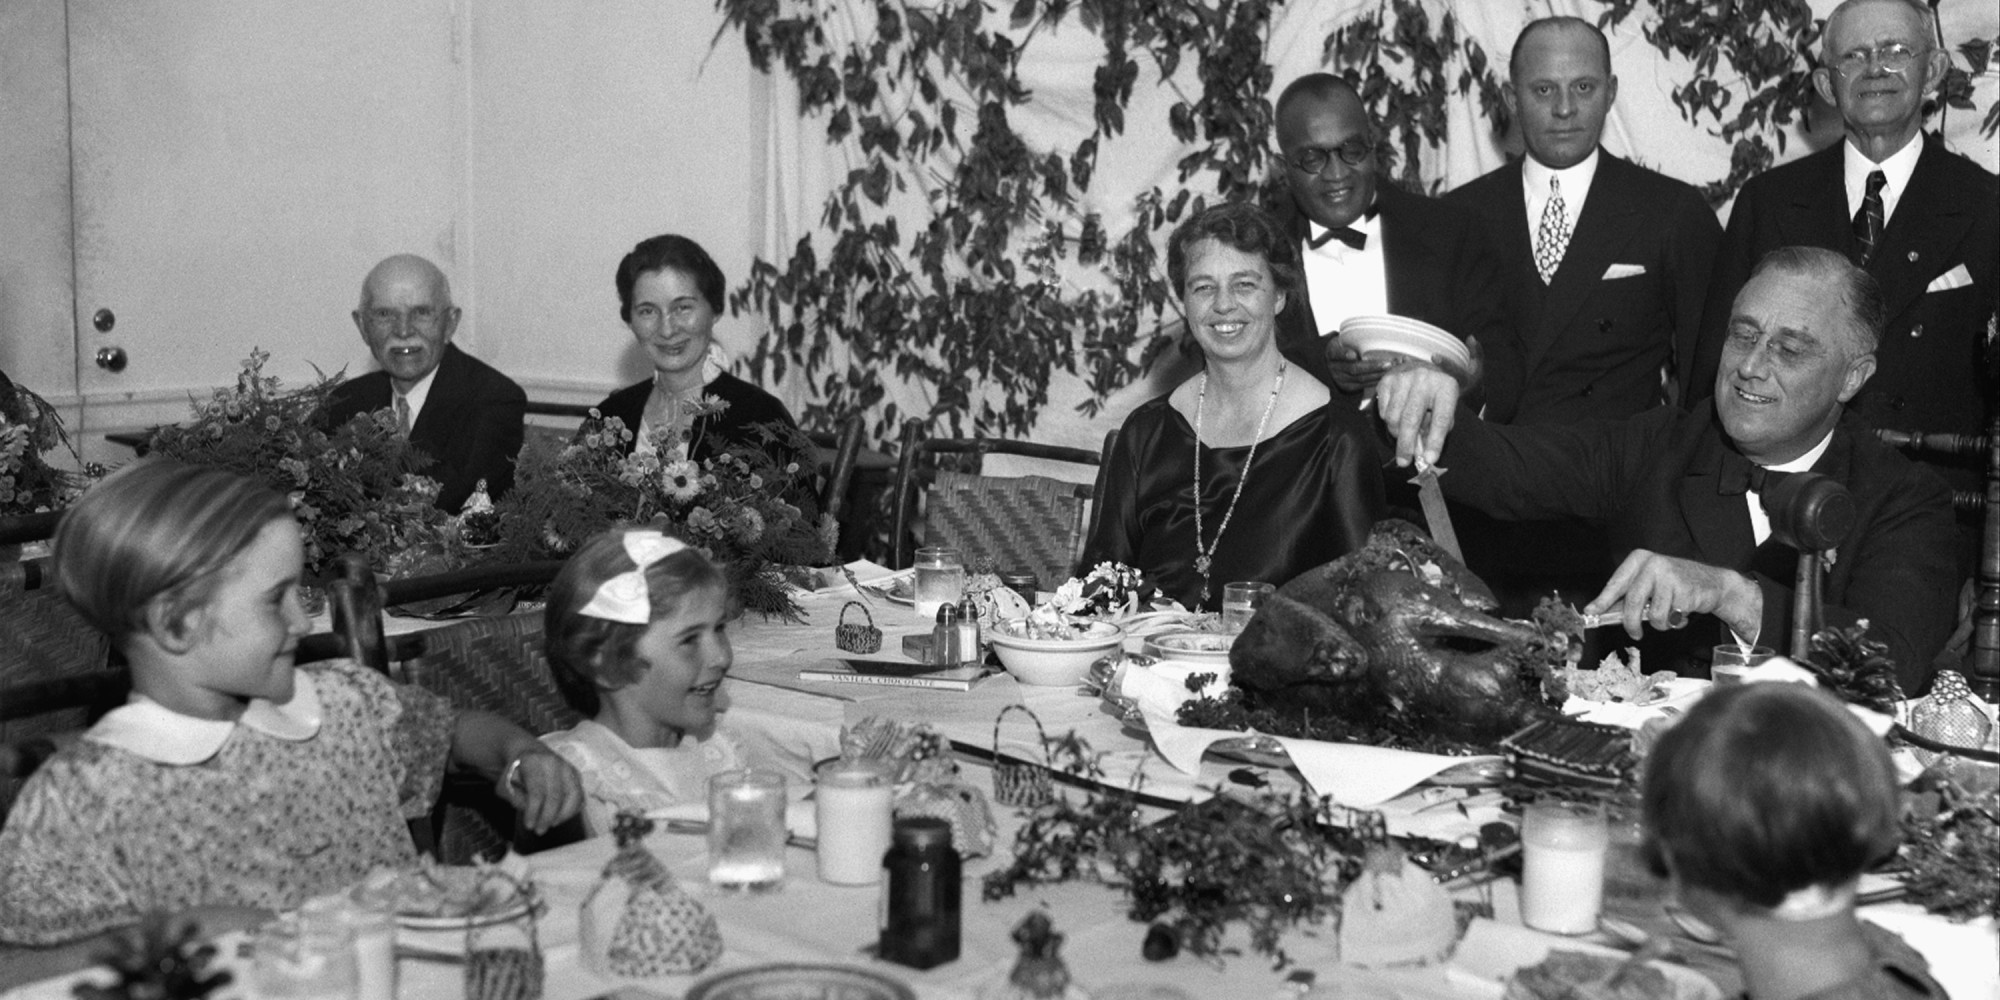 President Franklin D. Roosevelt carves the turkey during the annual Thanksgiving dinner for polio patients at Warm Springs, Ga., with first lady Eleanor Roosevelt smiling beside him, Dec. 1, 1933. (AP Photo)